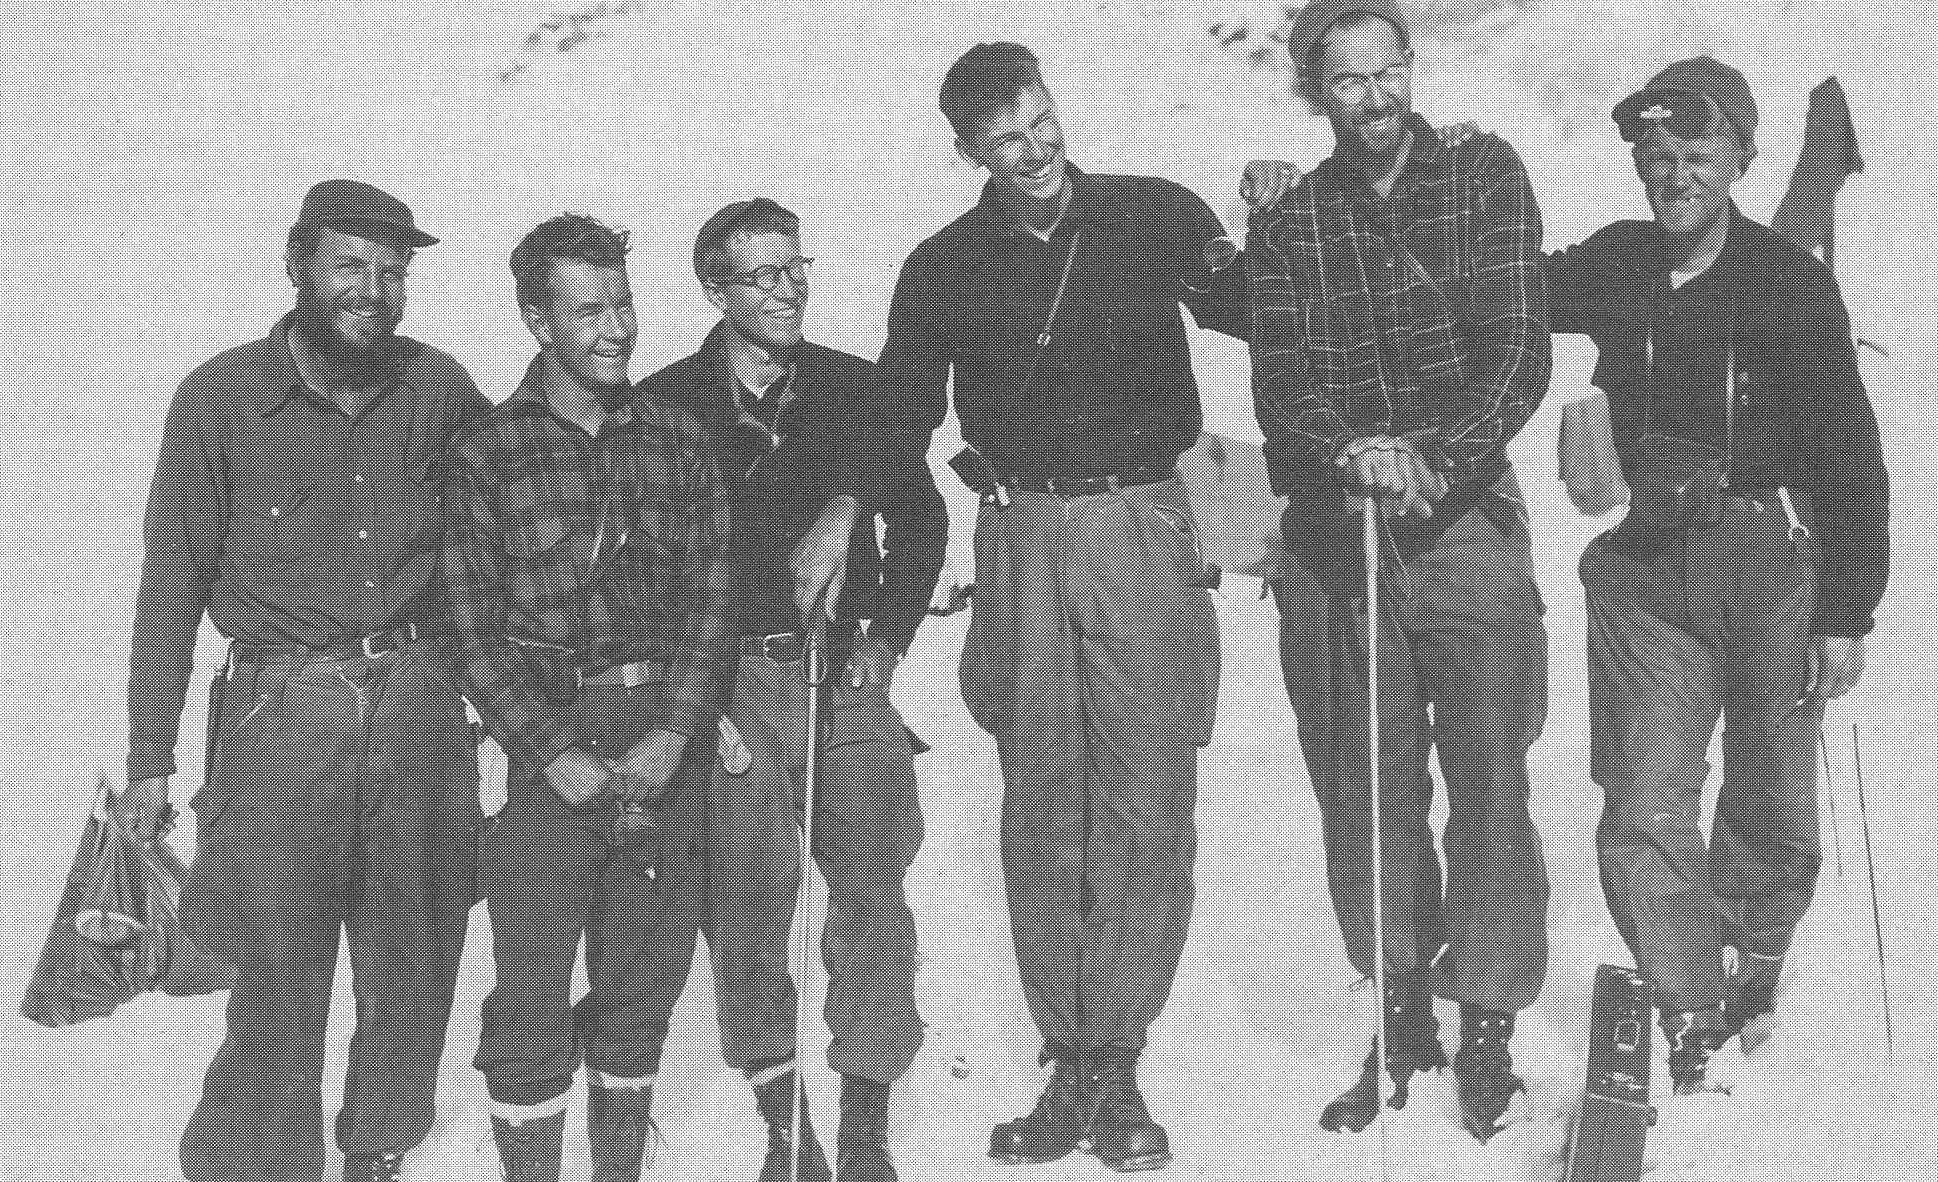 """Members of the first JIRP """"high ice"""" expedition to the Juneau Icefield in the summer of 1948. Left to right: Maynard Miller, W. Laurence Miner, Lowell Chamberlain, Melvin G. Marcus, William A. Latady and Anthony W. Thomas. Photo taken at Camp 4 on """"Hades Highway,"""" the upper Twin Glaciers' neve. Photo: FGER Archives"""